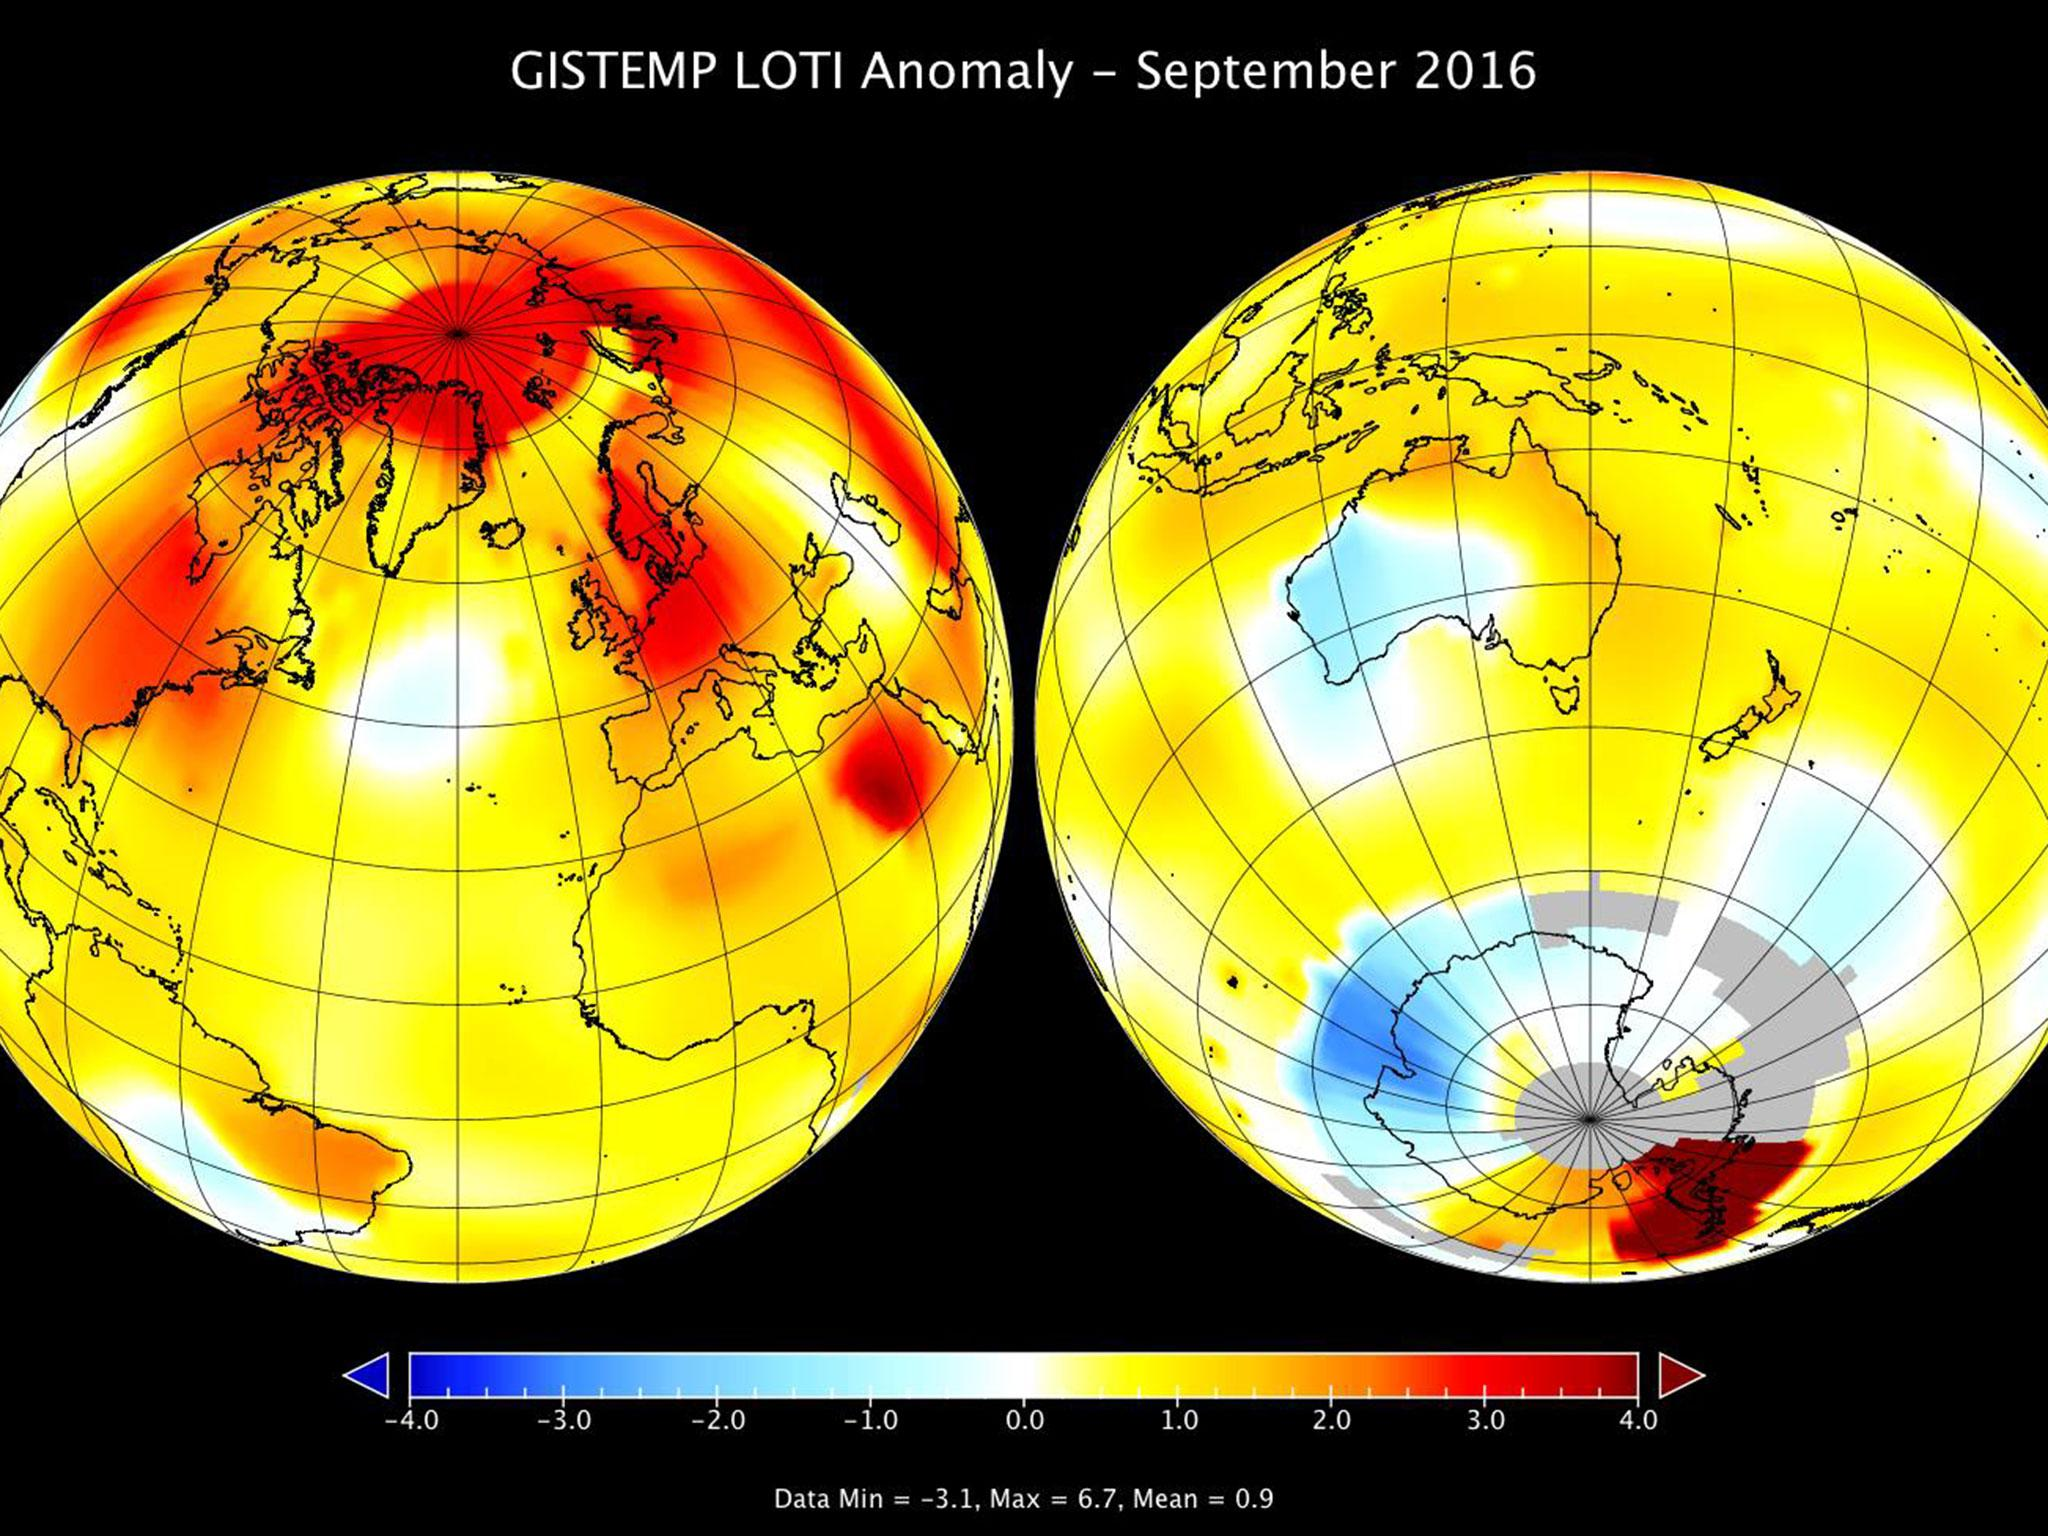 Earth on track for its warmest year on record after hottest September in 136 years